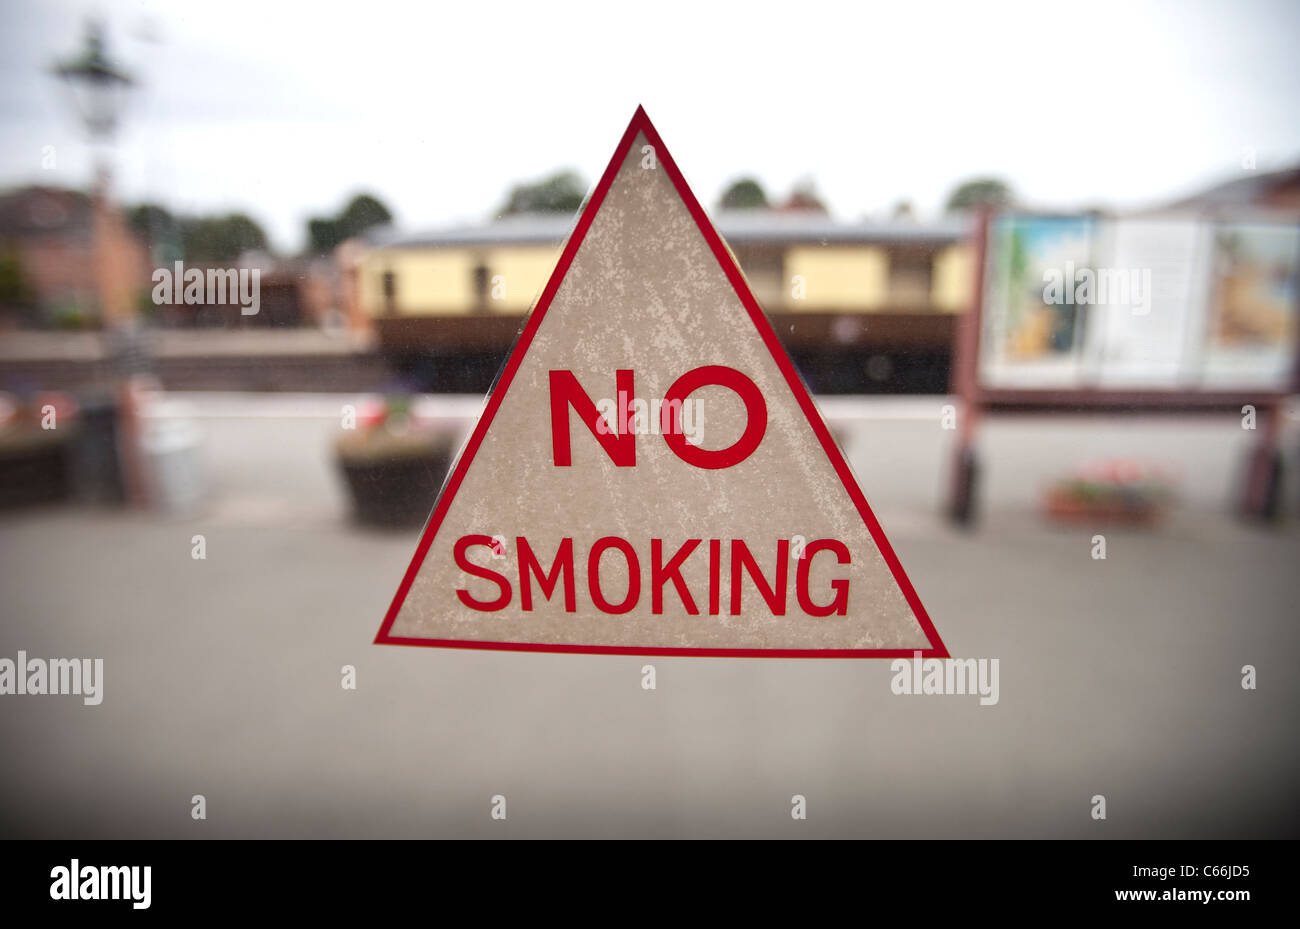 A 'no smoking' sign on the window of an old steam train carriage, Kidderminster, UK. - Stock Image